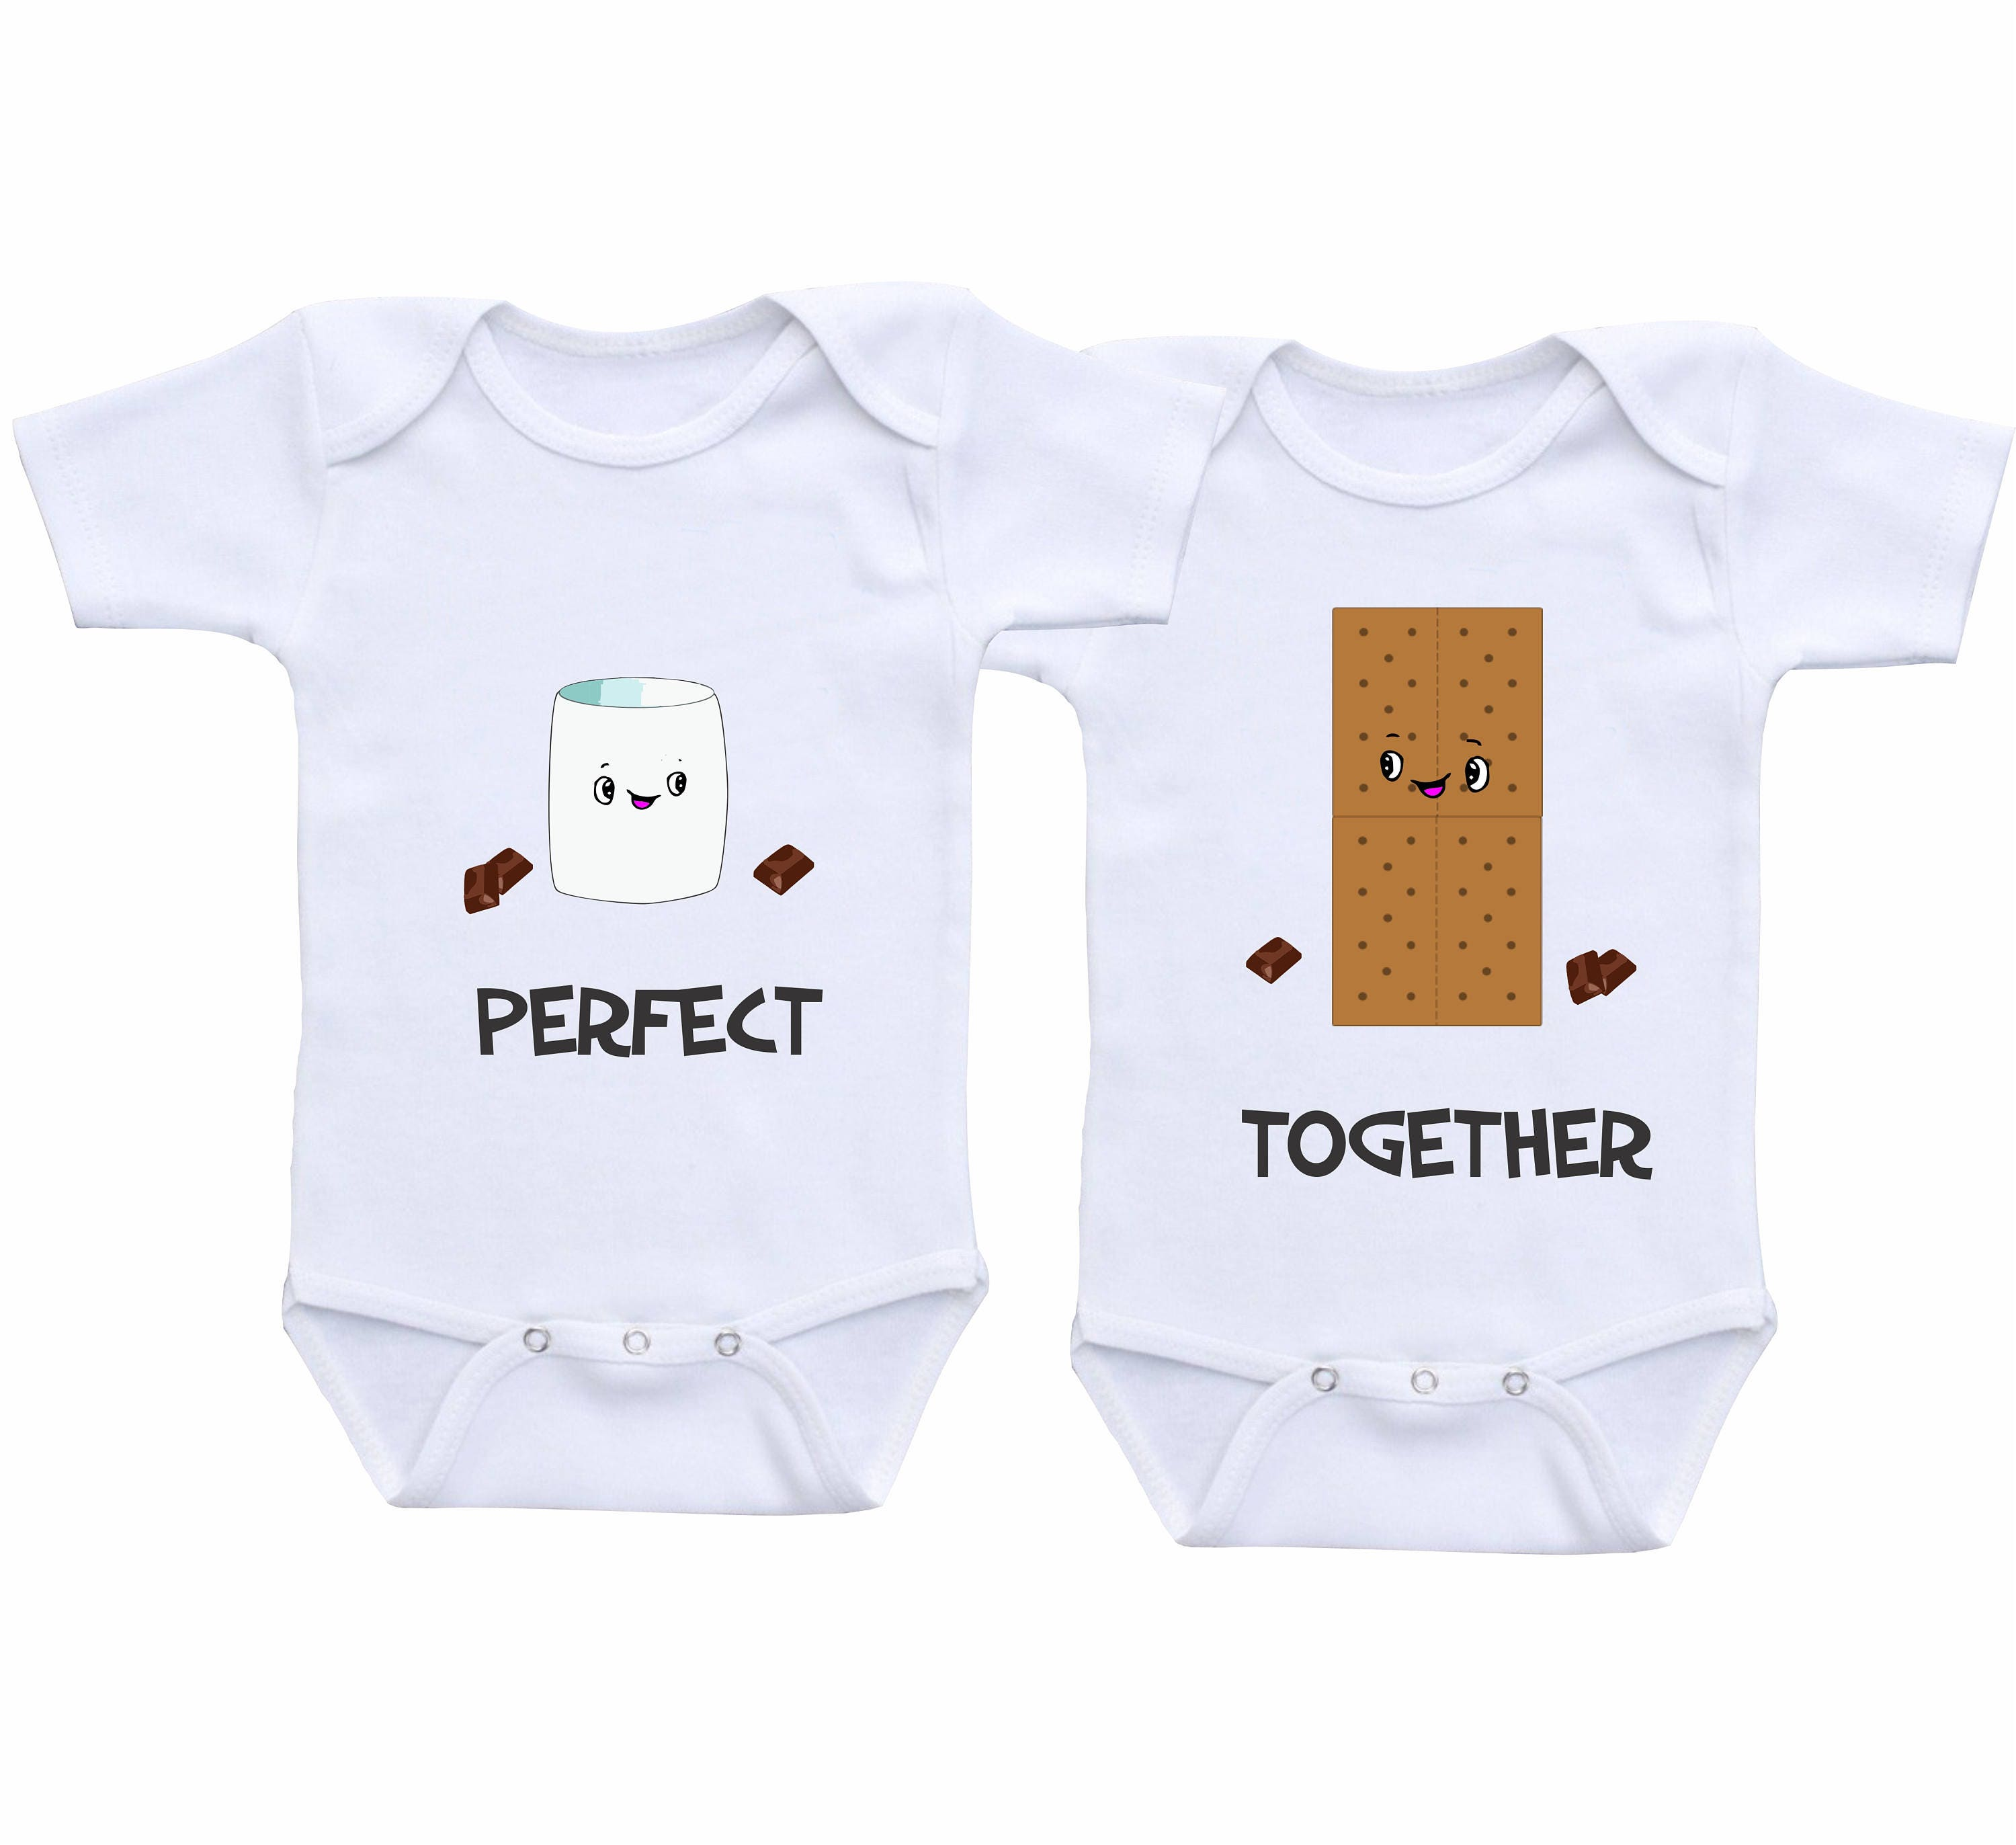 60ddf956399 Twin baby gift Twins Outfits boy girl twin outfit Twin